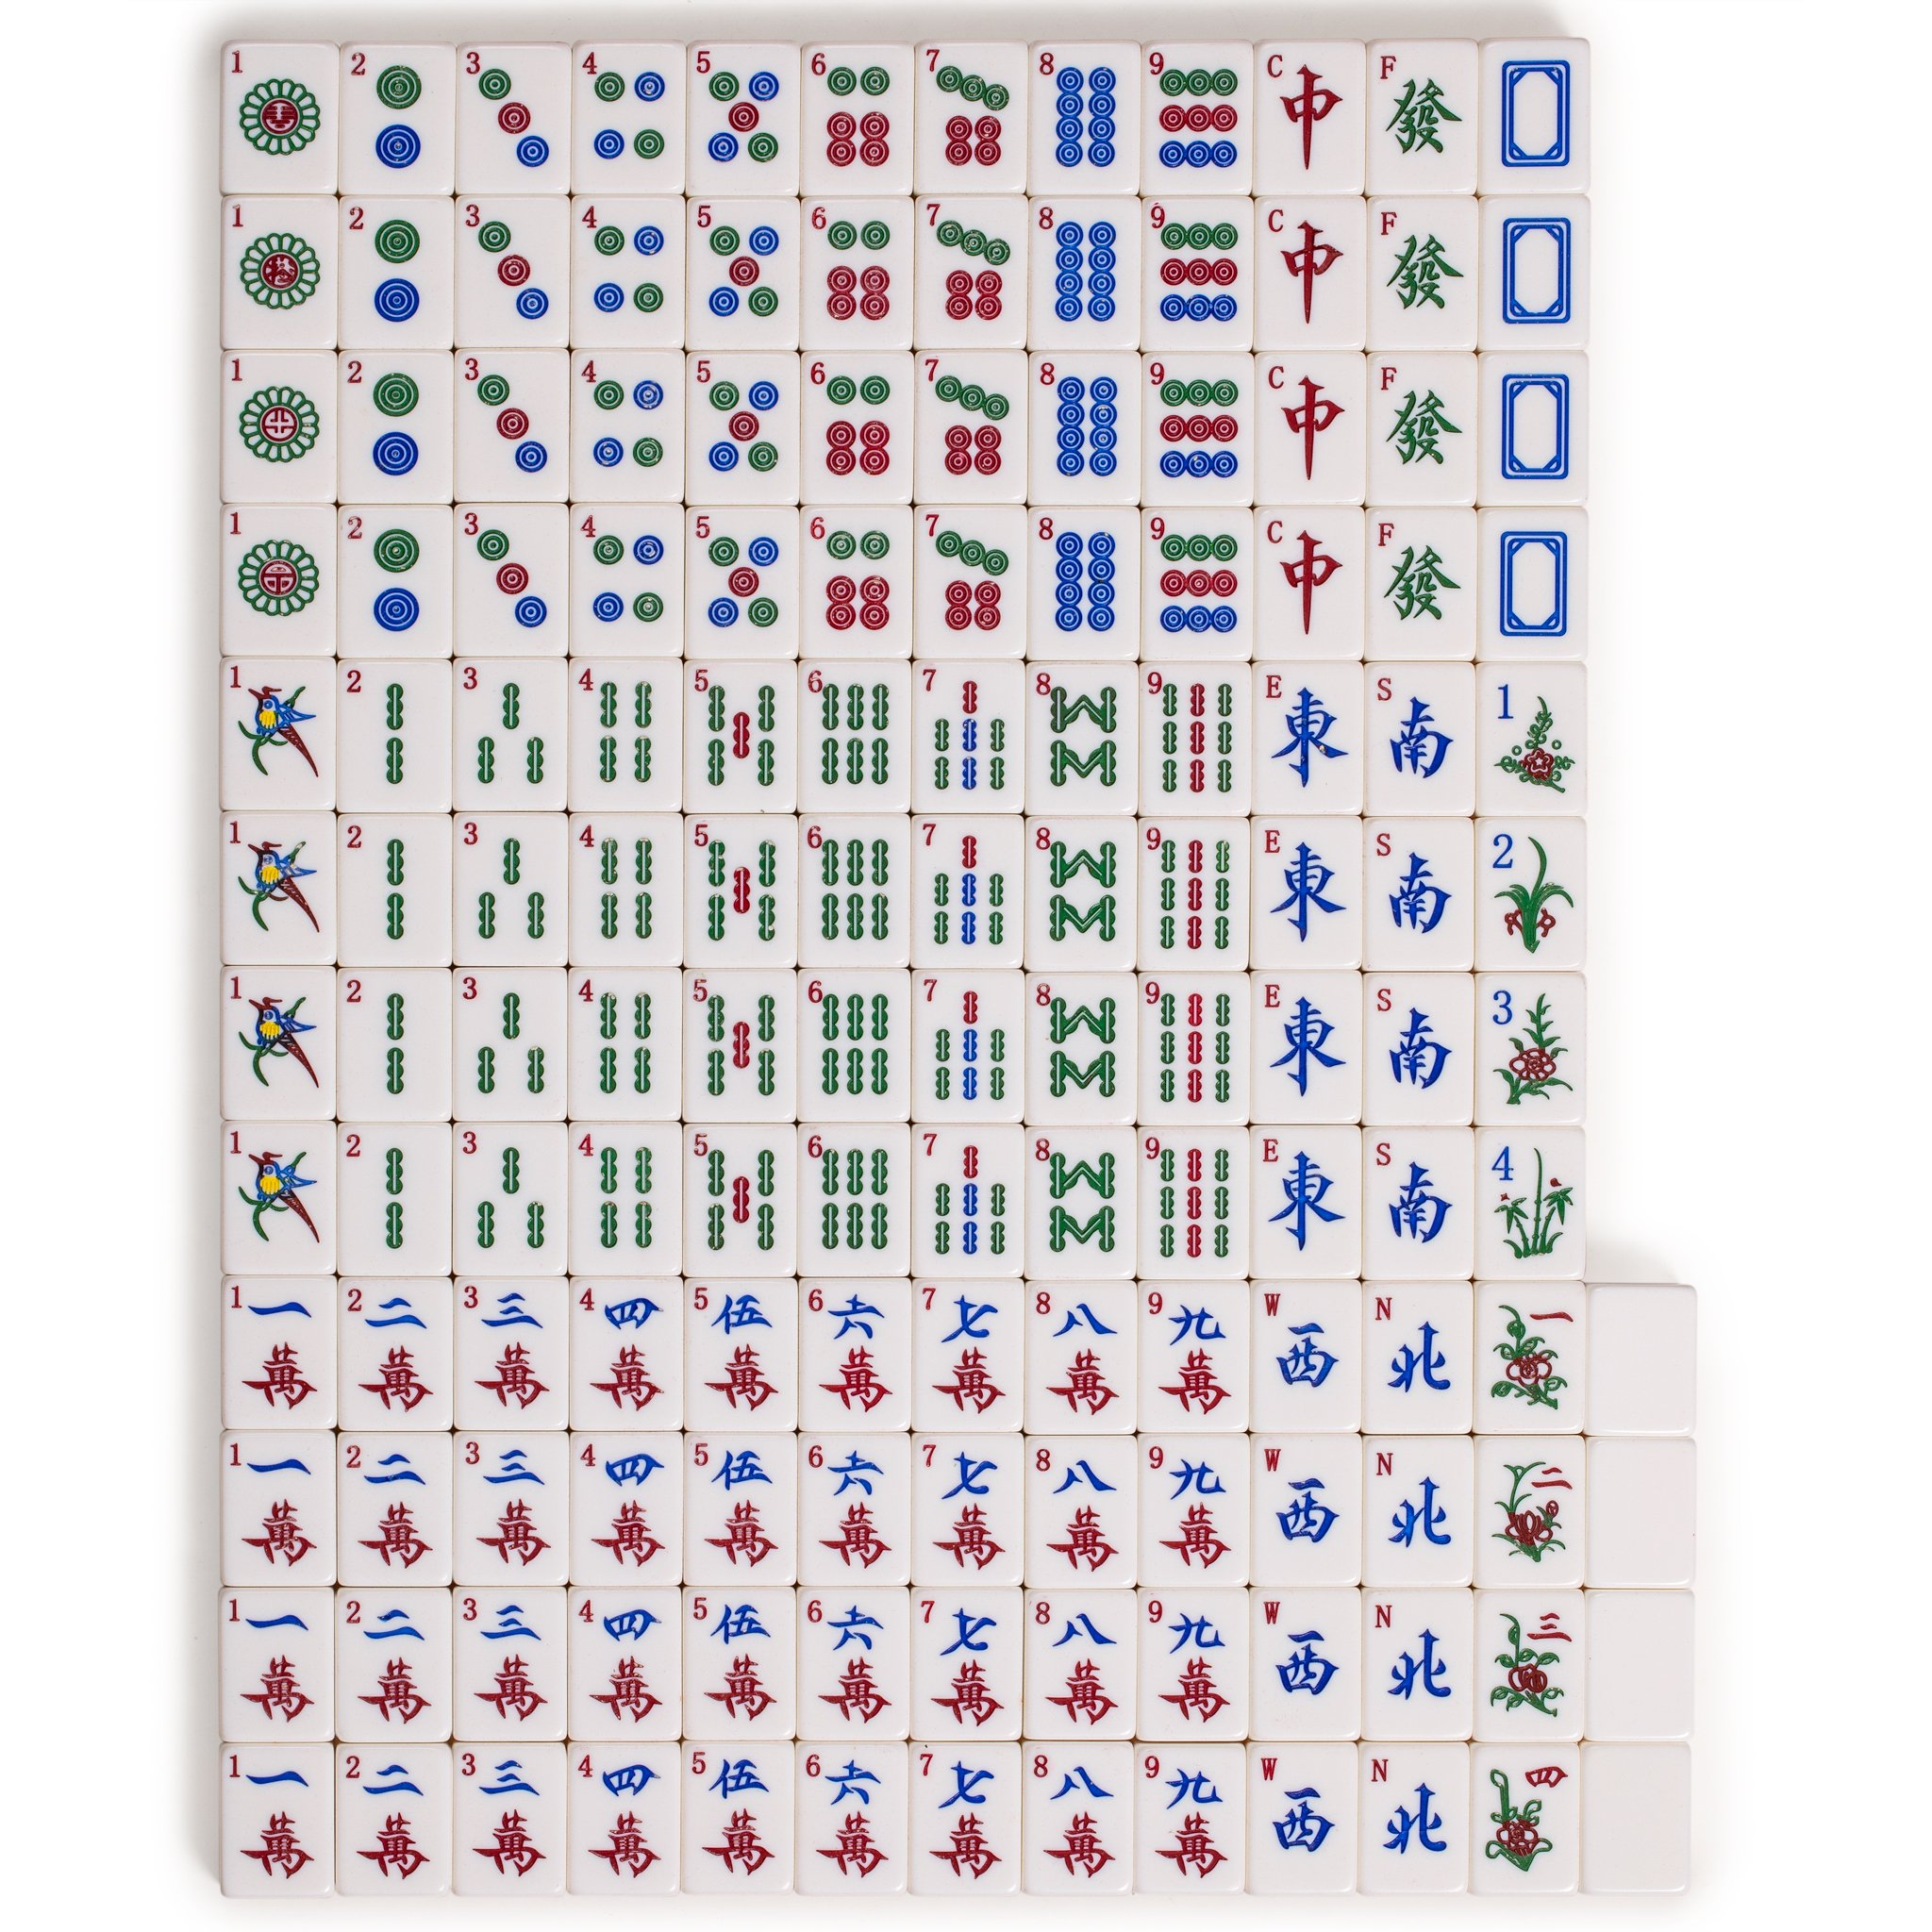 Yellow Mountain Imports Chinese Mahjong Set, Champagne Gold - with Wood Veneer Case - Medium Size Tiles: 1.3 x 1 x 0.7 inches (34mm x 25mm x 19mm) - for Chinese Style Gameplay Only by Yellow Mountain Imports (Image #7)